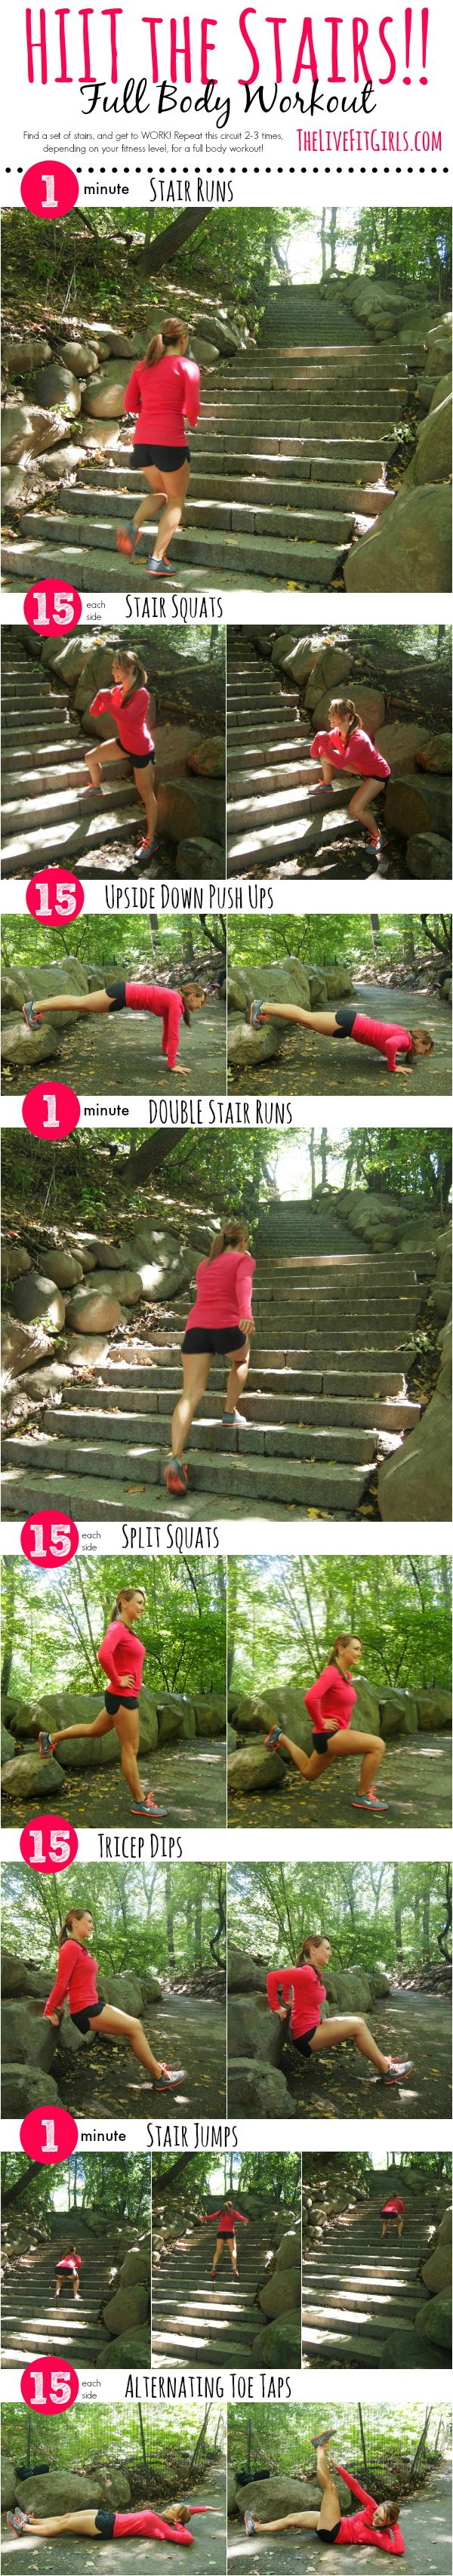 HIIT the Stairs! Find a set of stairs and get to WORK! Repeat this circuit 2-3 times, depending on your fitness level, for a full body workout! - If you like this pin, repin it and follow our boards :-) #FastSimpleFitness